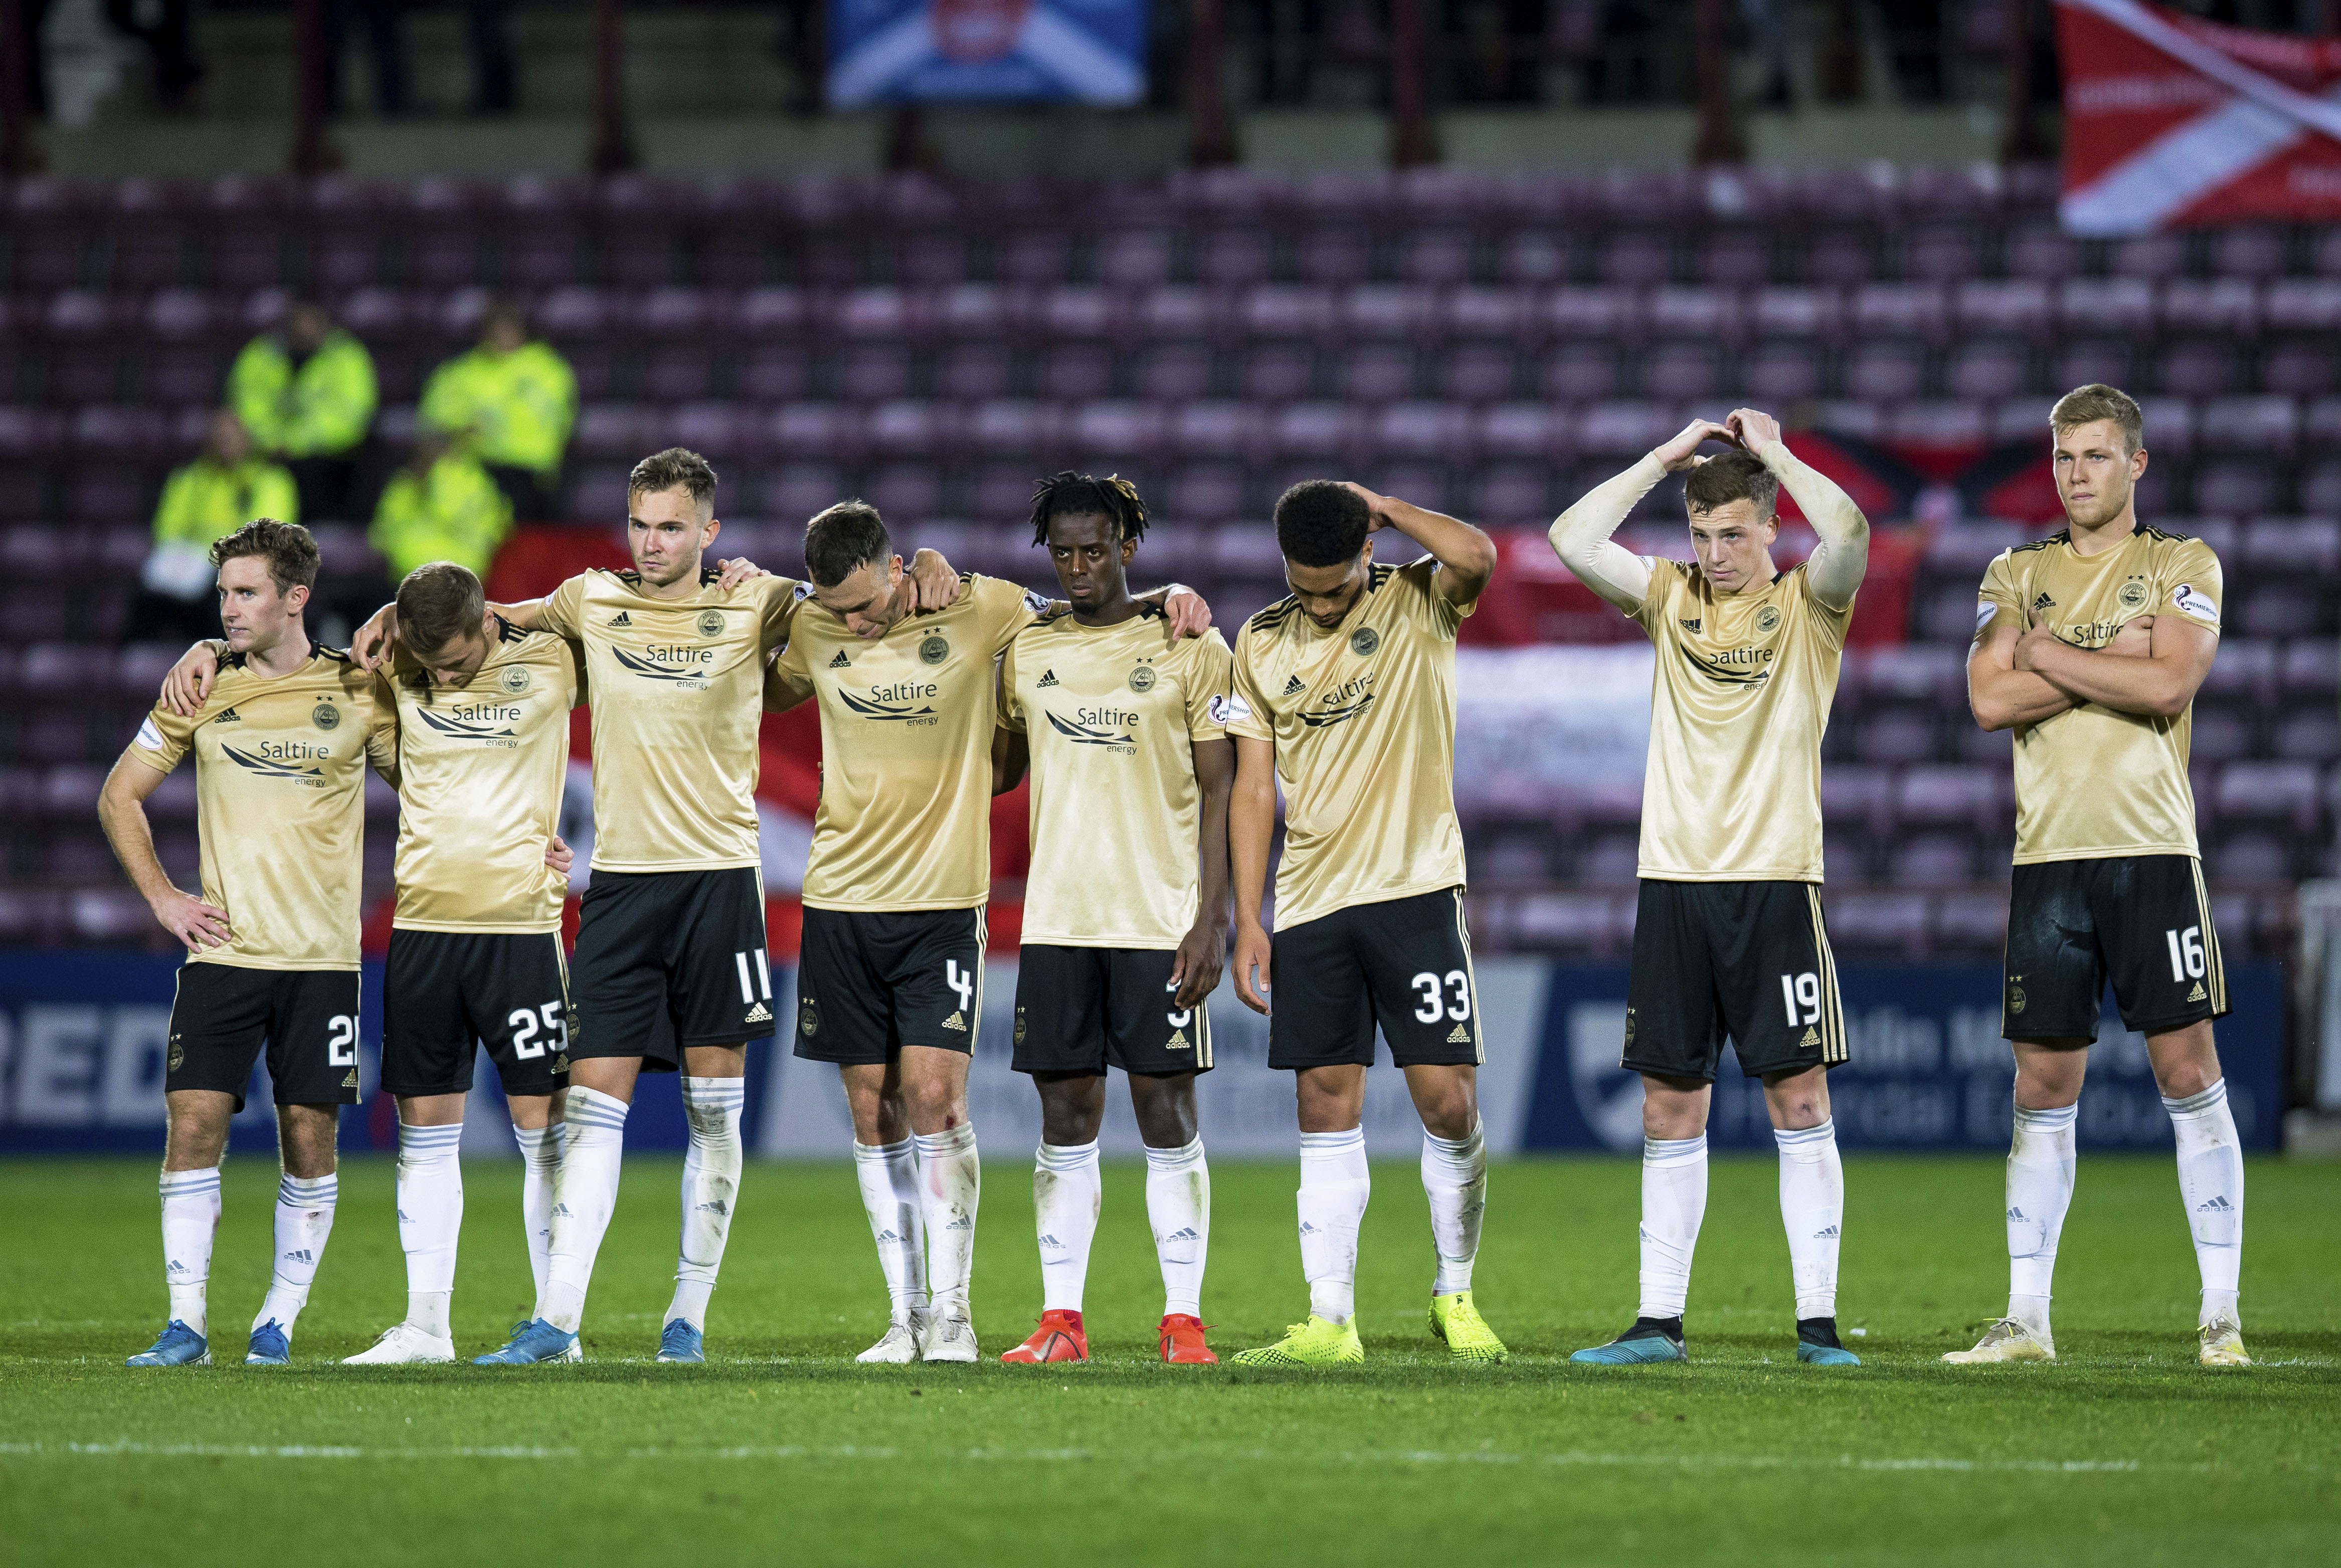 The Aberdeen players look dejected after defeat to Hearts on penalties in the Betfred Cup quarter final